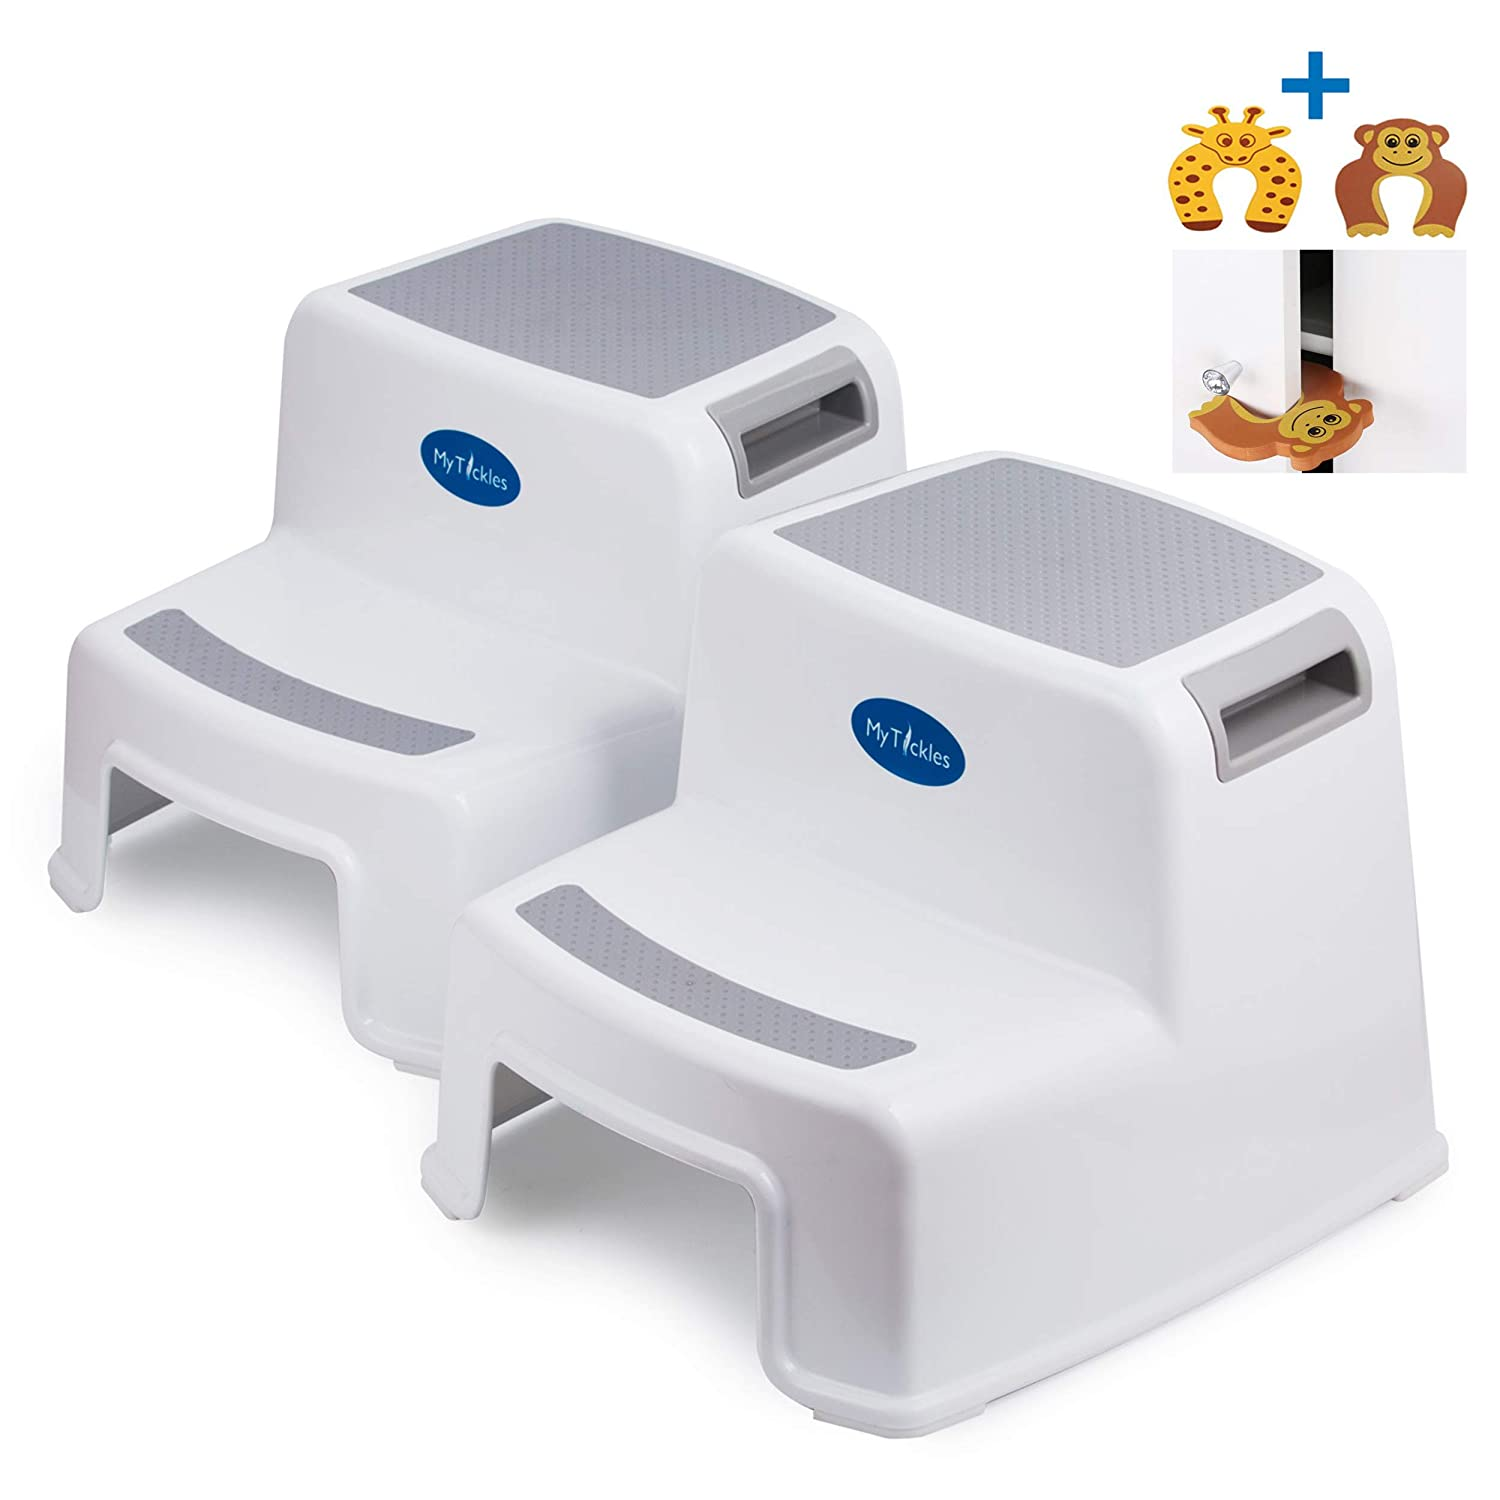 (2 Pack) 2 Step Stool for Kids with 2 Free Finger Pinch Guards! Perfect for The Bathroom and Kitchen, with Extra Thick Anti-Slip Rubber Feet. MyTickles